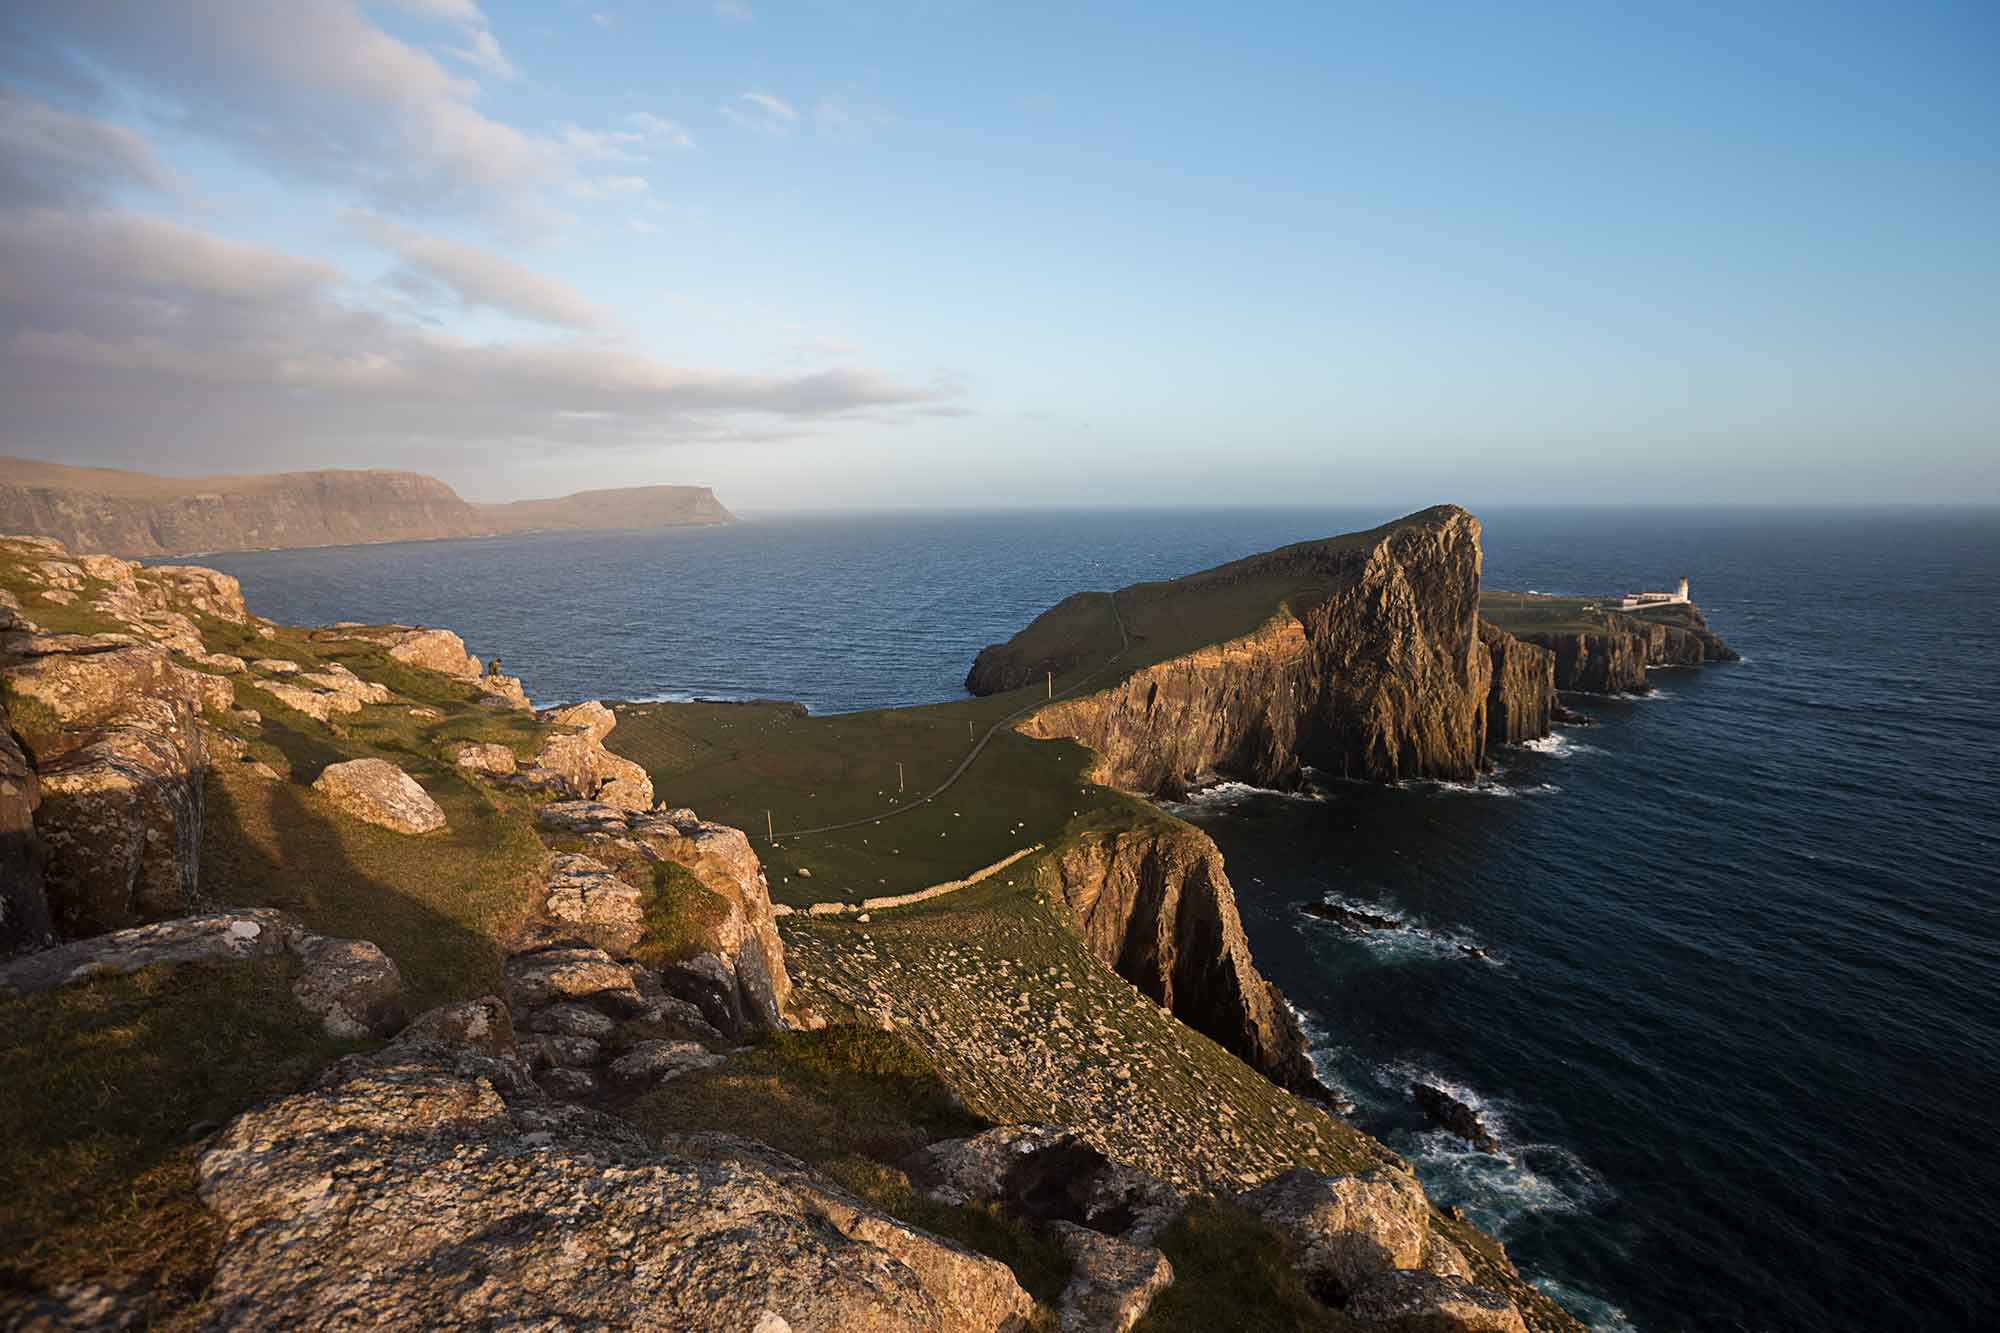 Neist Point is one of the most photographed spot. It's true beauty comes out during sunset, when the dark blue ocean clashes with the steep orange cliffs. © ULLI MAIER & NISA MAIER